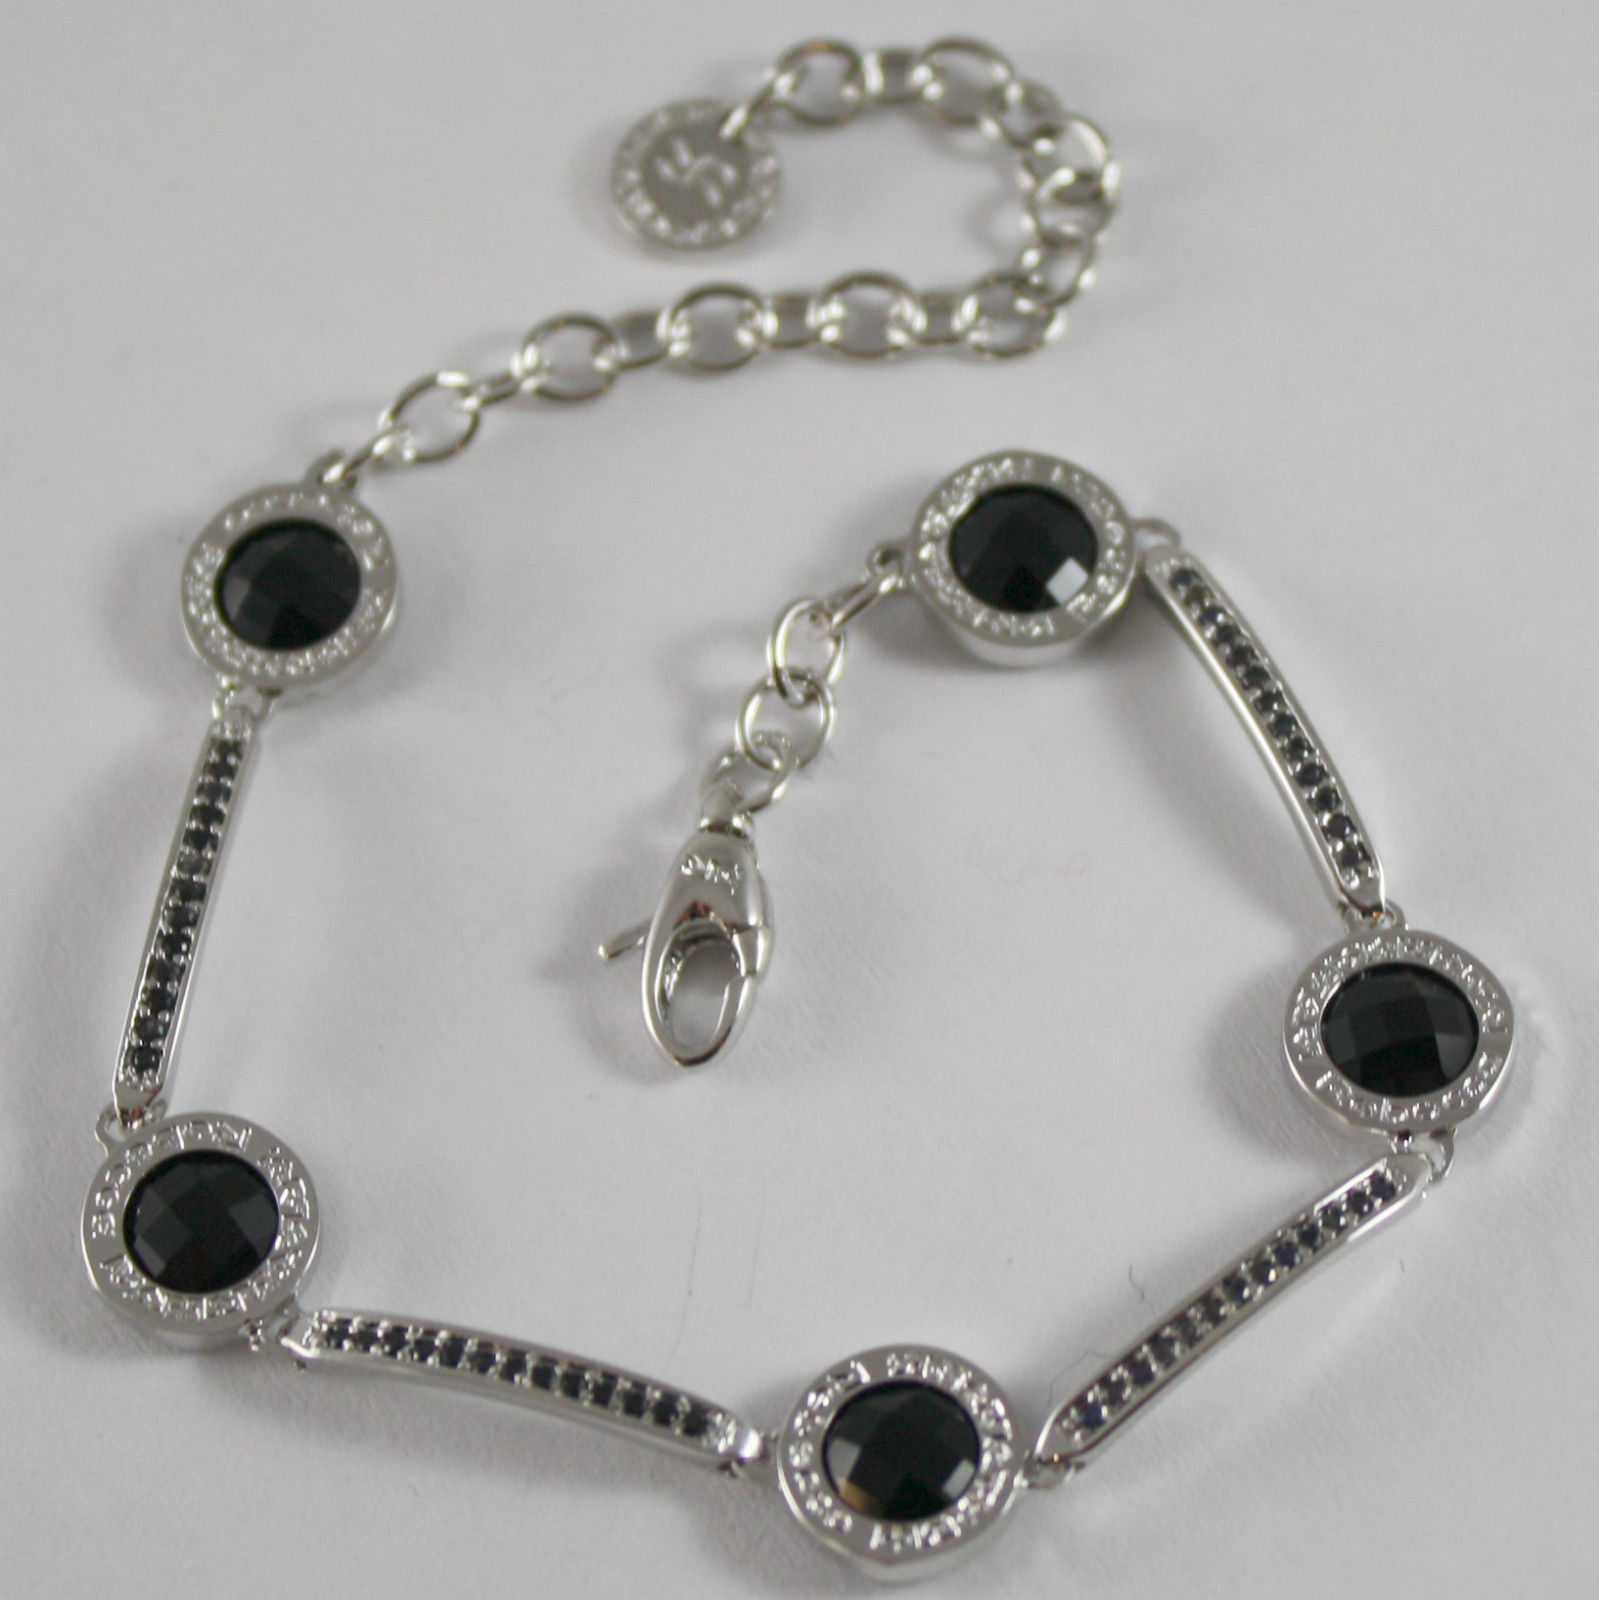 RHODIUM BRONZE BRACELET SEMI RIGID BLACK TENNIS B14BBN36, REBECCA MADE IN ITALY